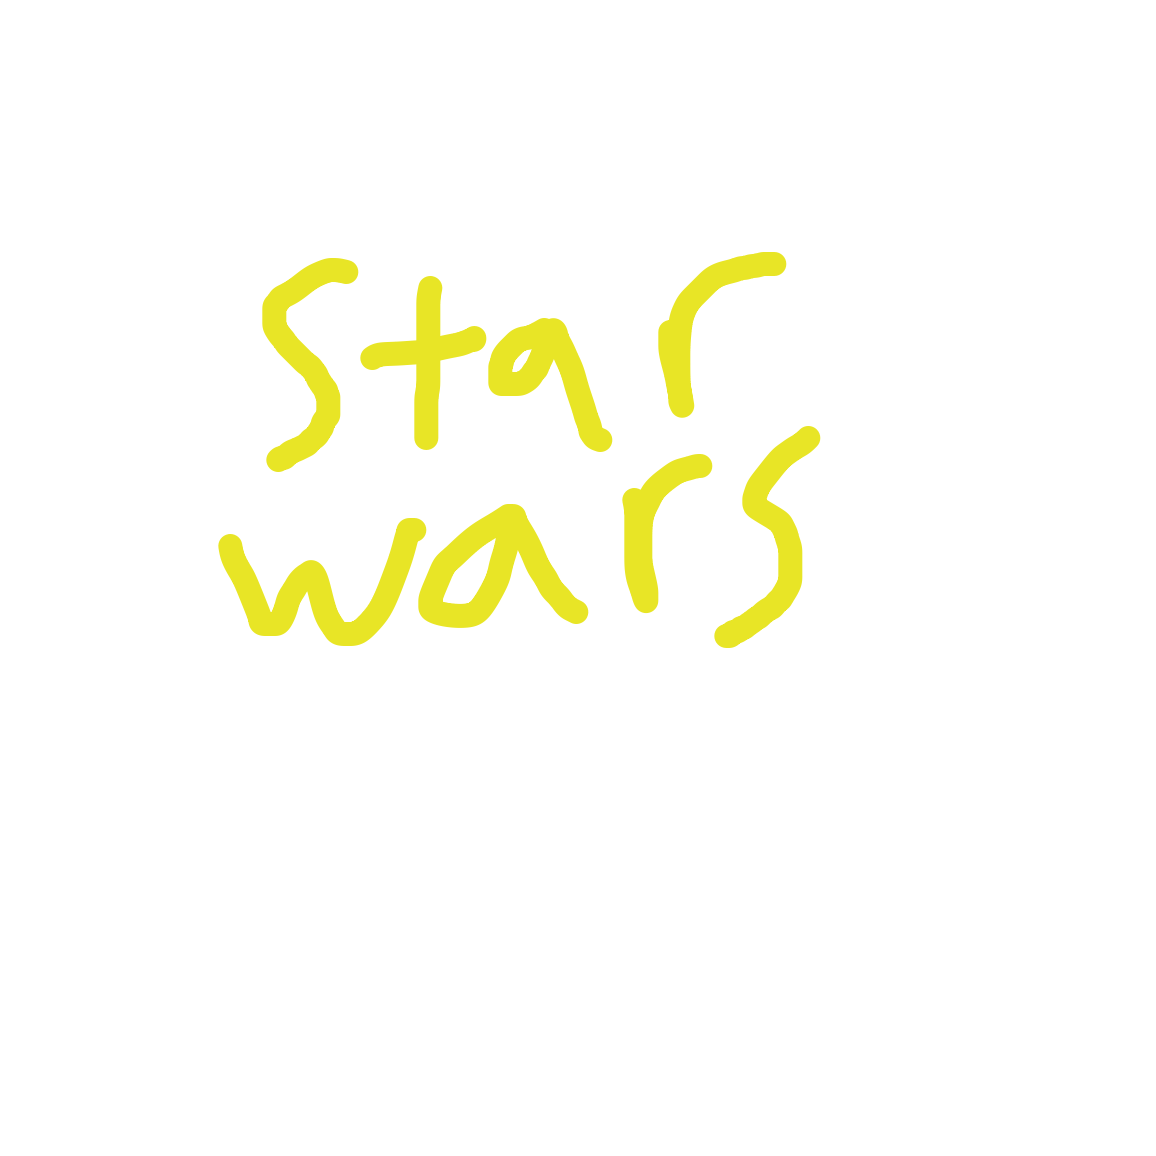 Star wars - Online Drawing Game Comic Strip Panel by Nonexistent